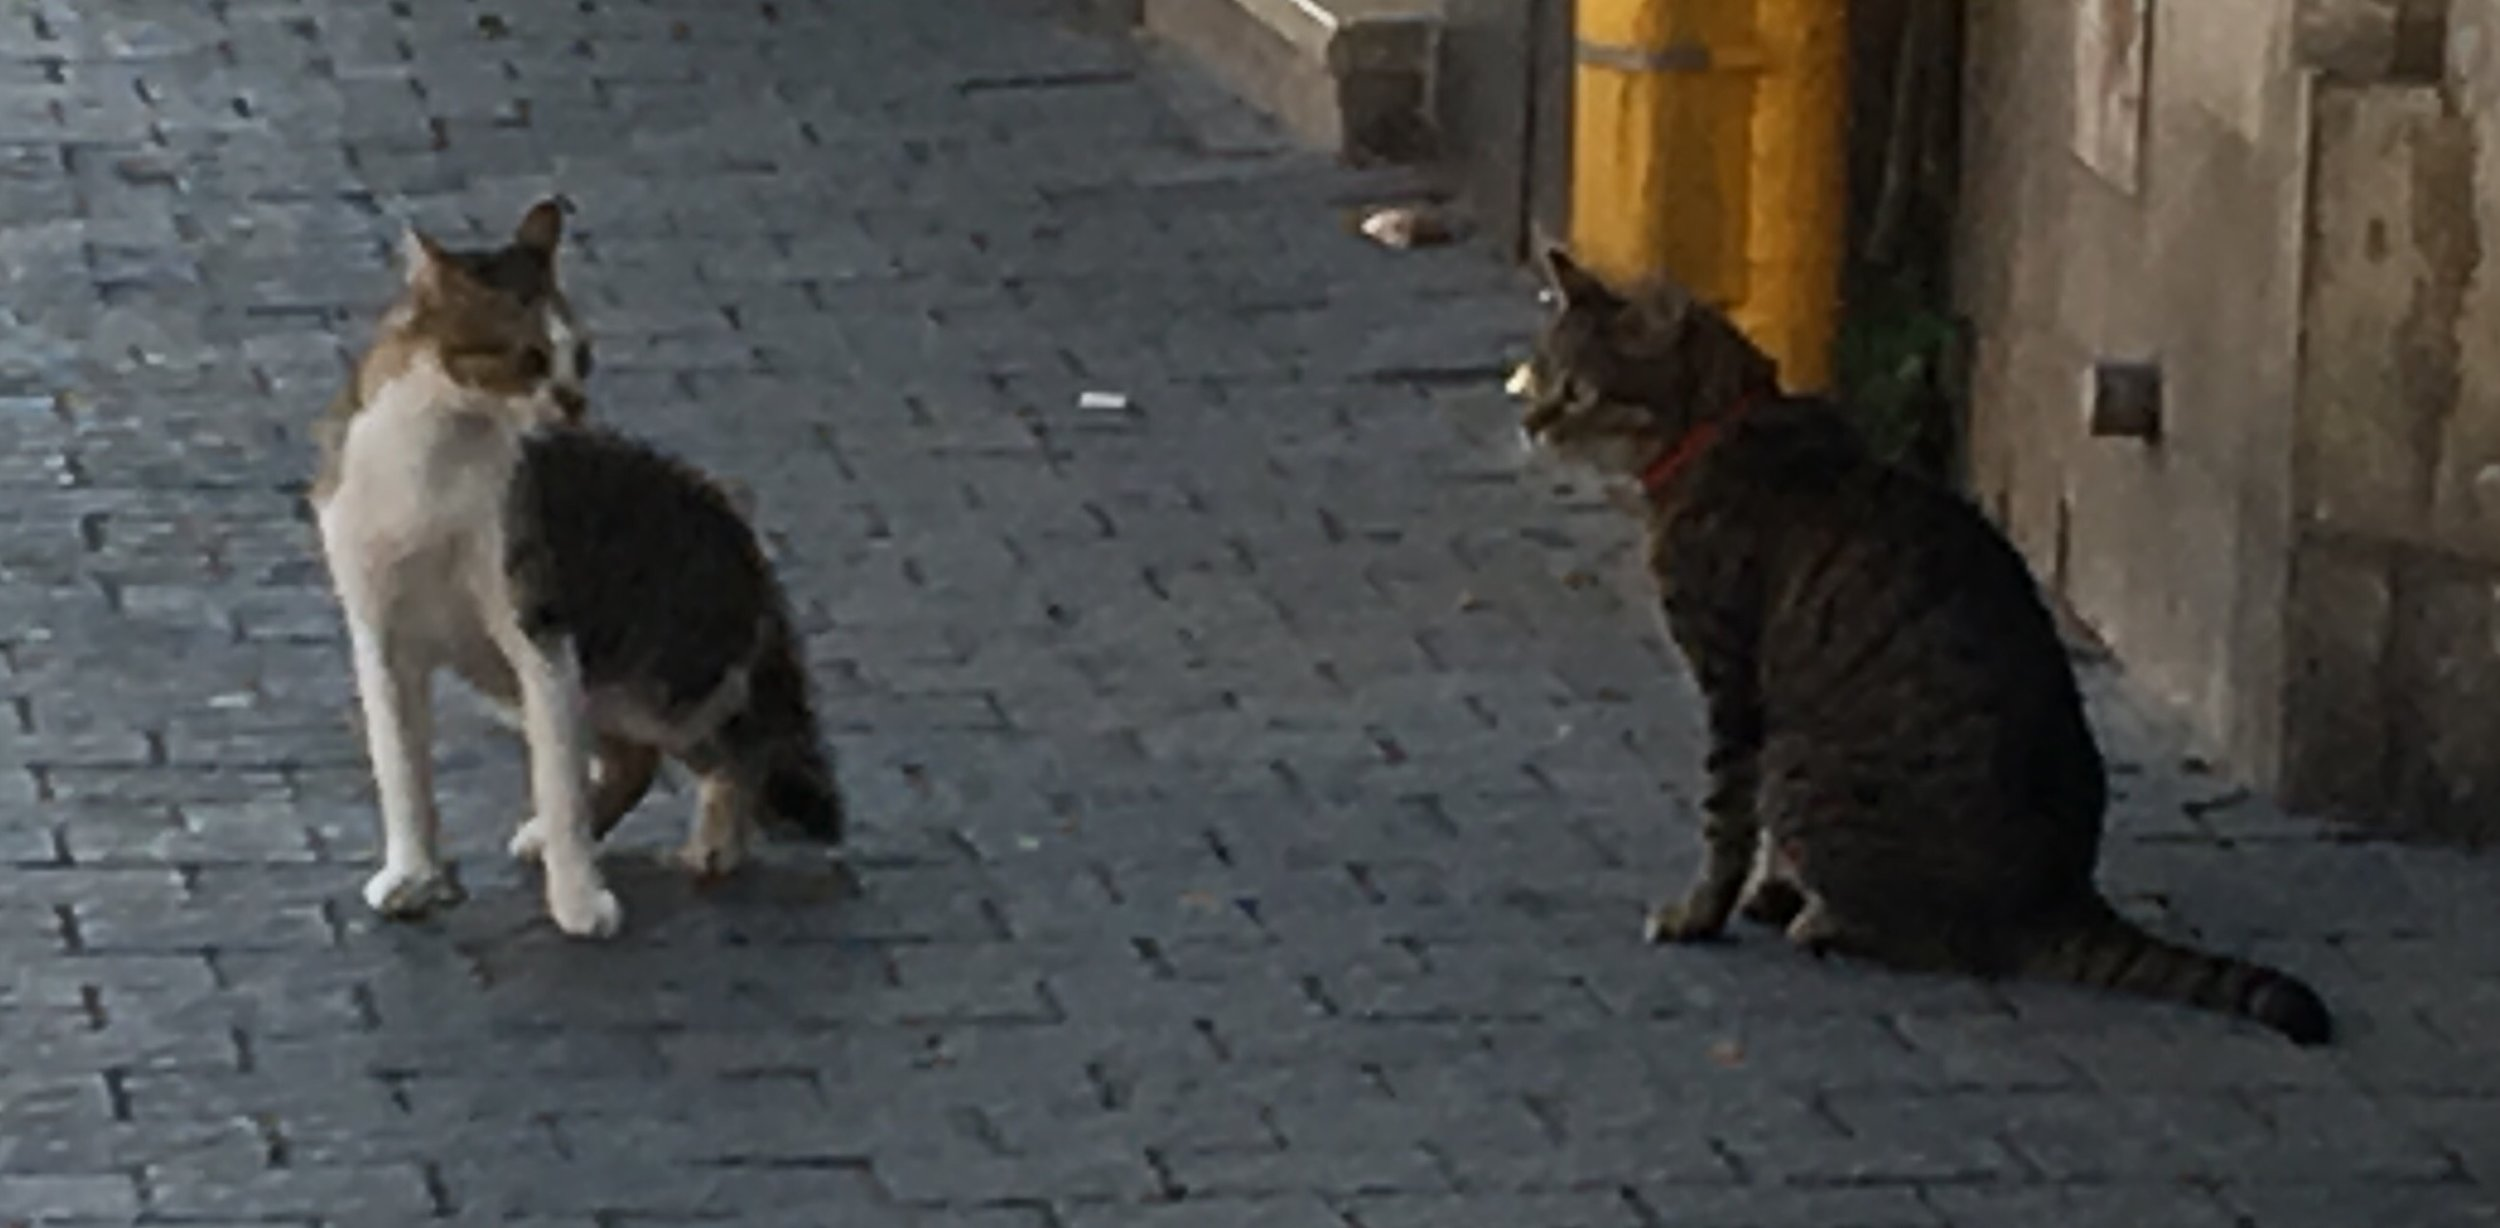 A solo cat and a cat who owns a person consider each other, rather like the cats in  The Aeronaut's Windlass . [Image shows a thin cat with a white belly and calico back staring down a much more well fed grey and black tabby with a red collar]